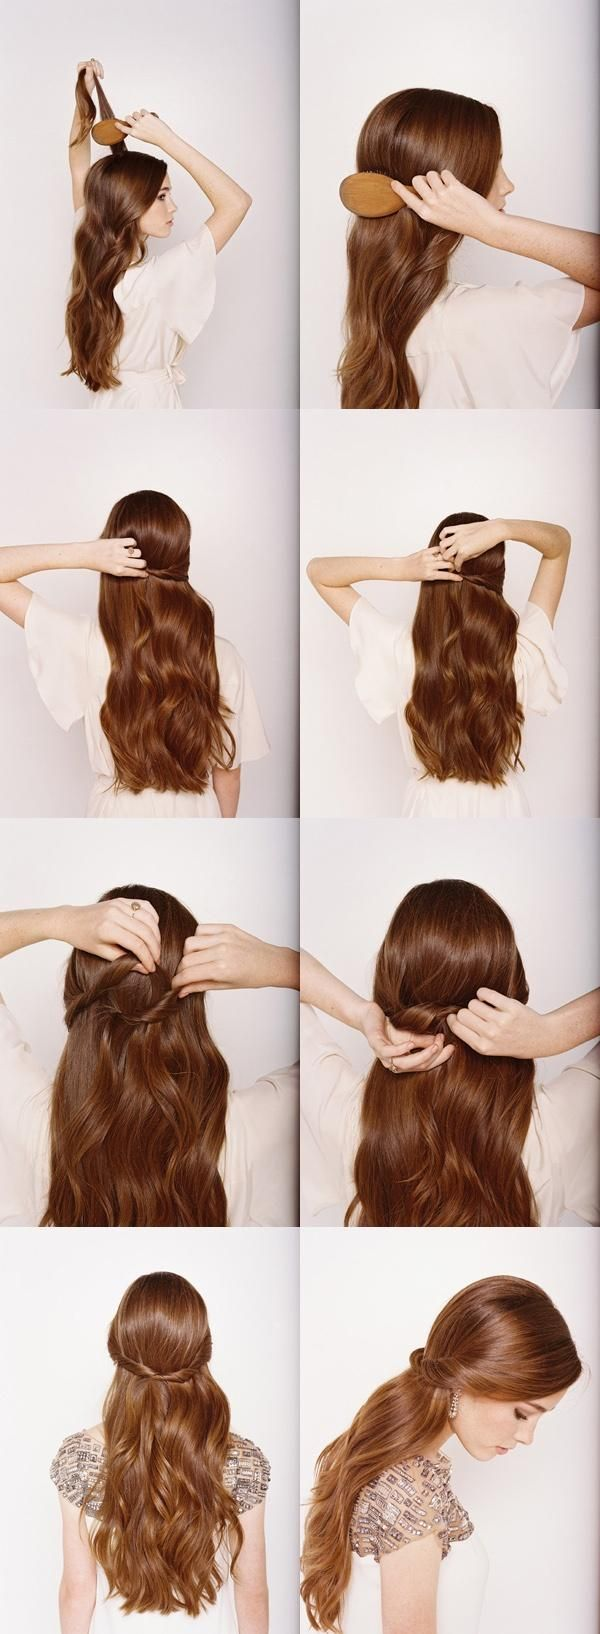 Super easy step by step hairstyle ideas health u beauty